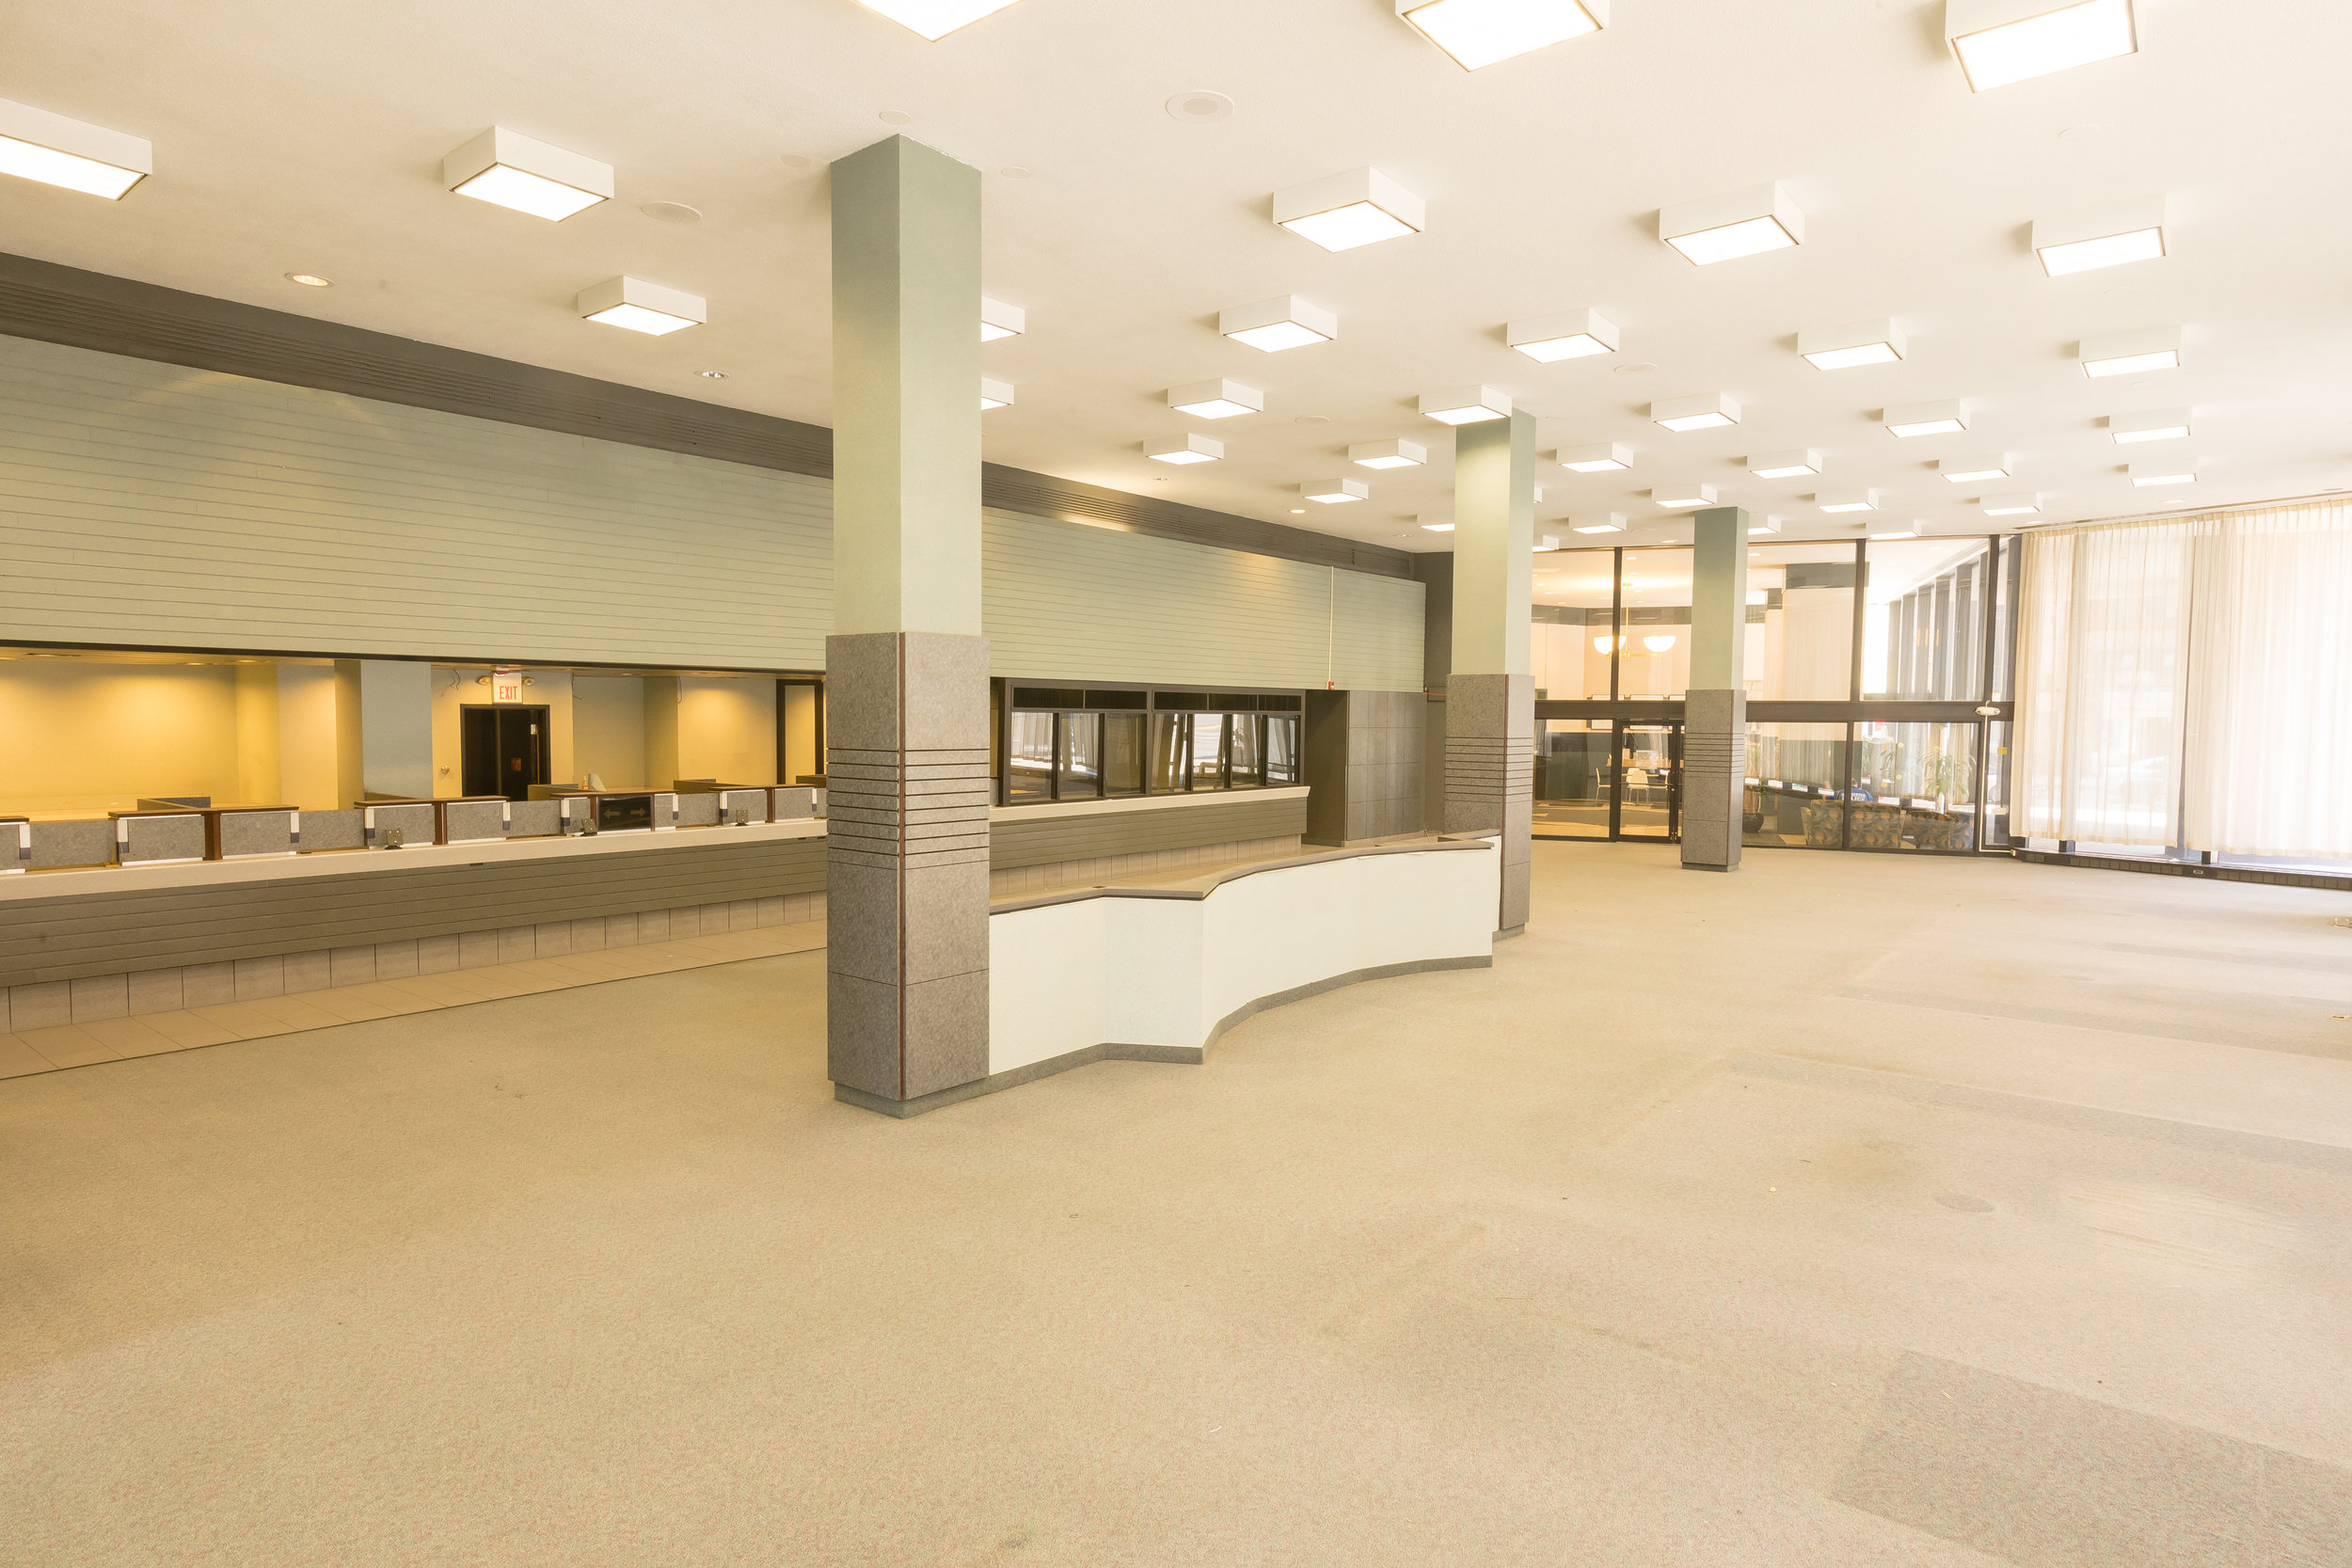 The CrossRoads Building has over 12,000 square feet for your business.